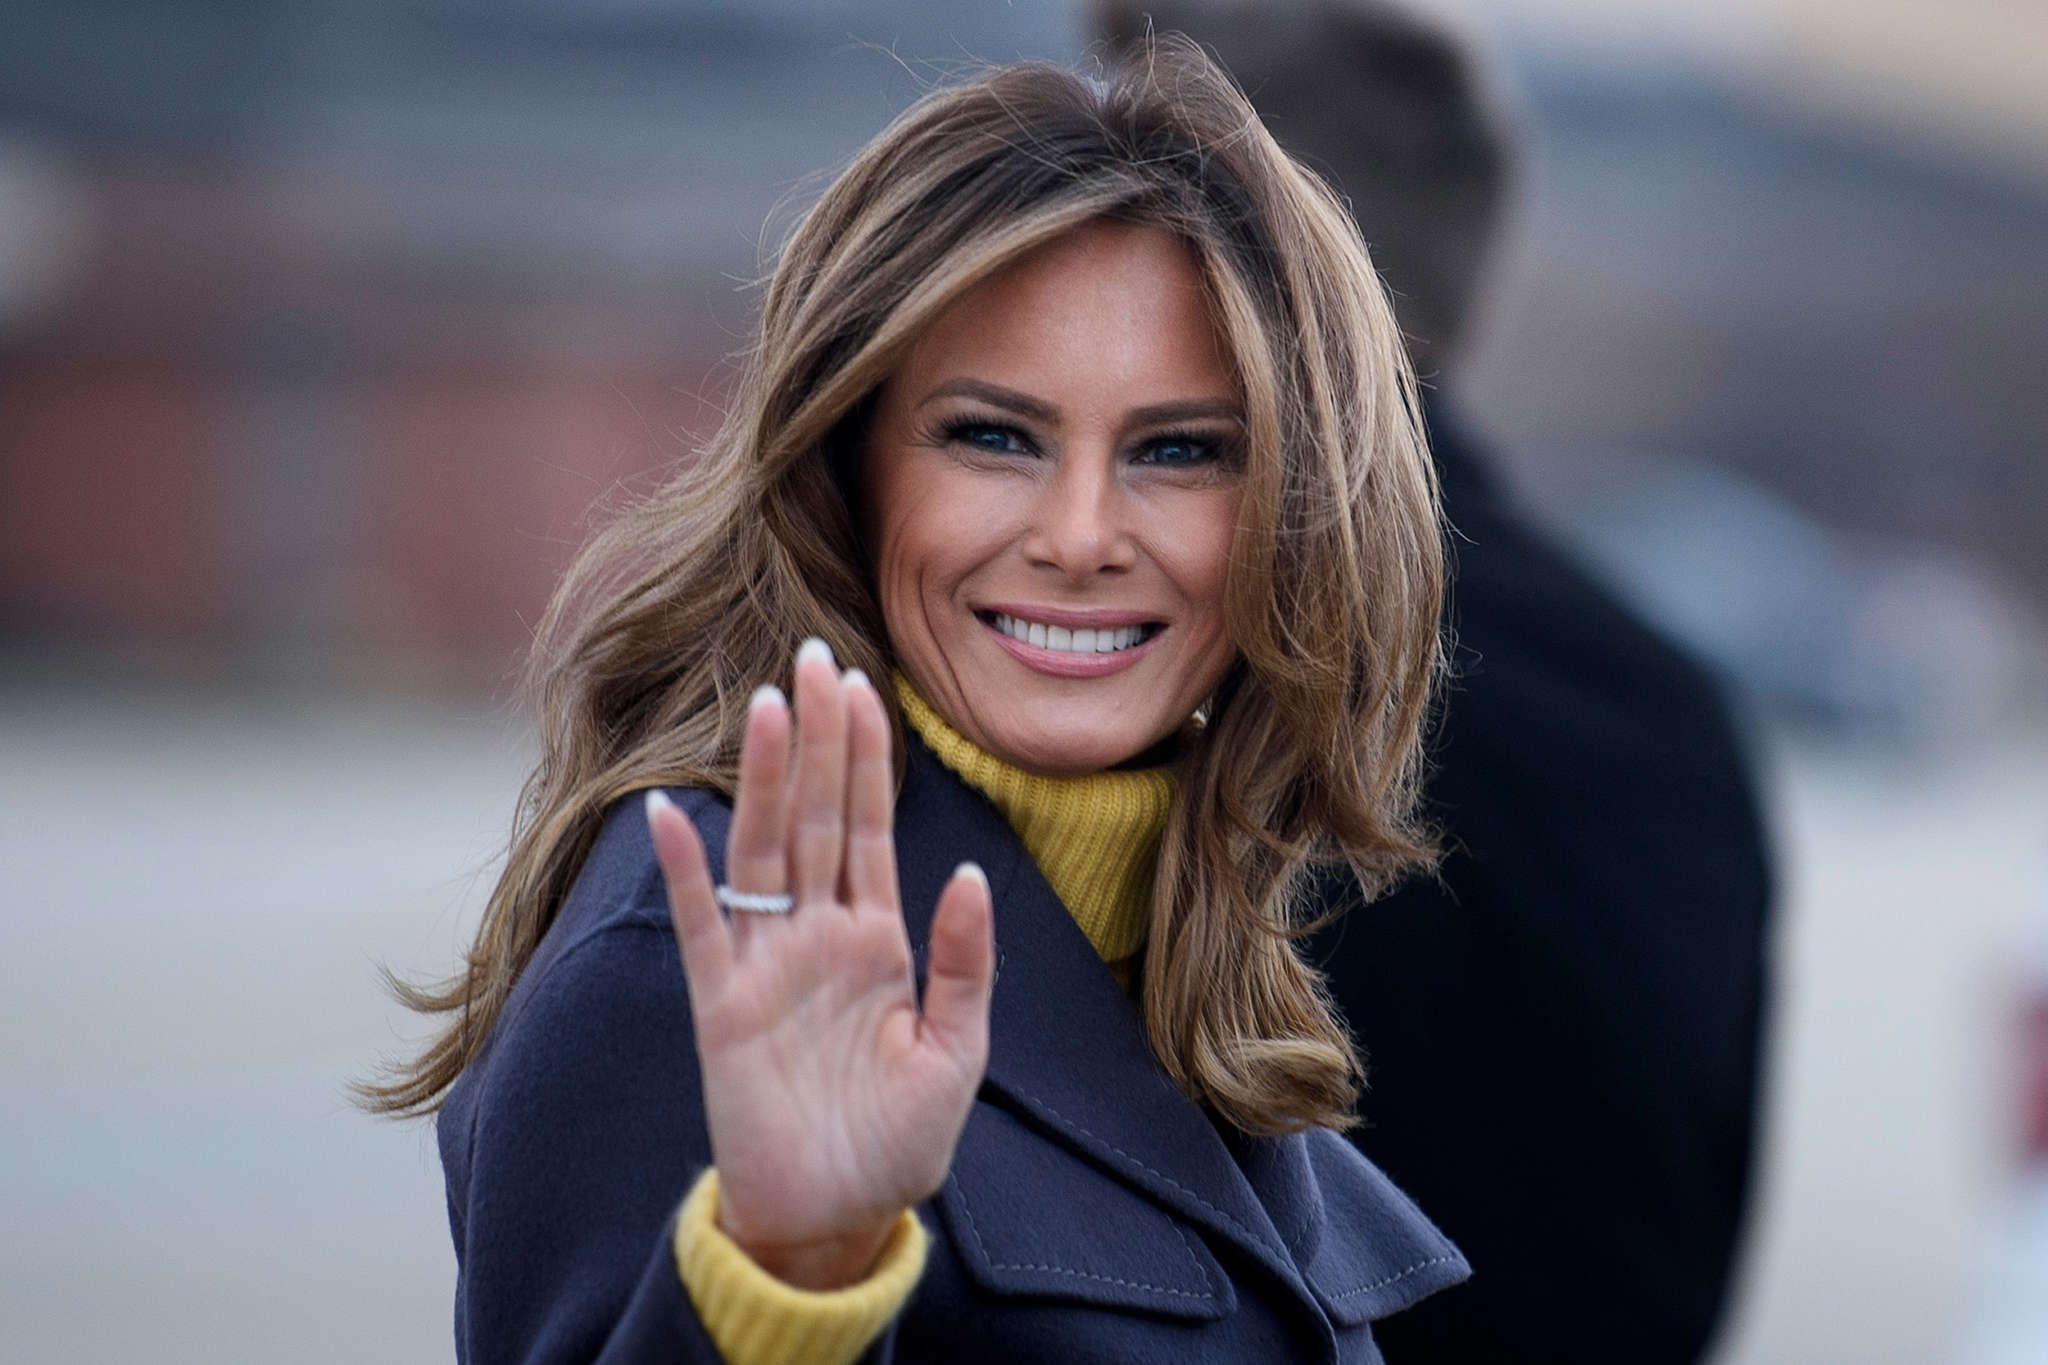 melania-trump-author-and-former-bff-of-the-flotus-reveals-how-she-justified-the-separation-policy-of-kids-from-parents-at-the-border